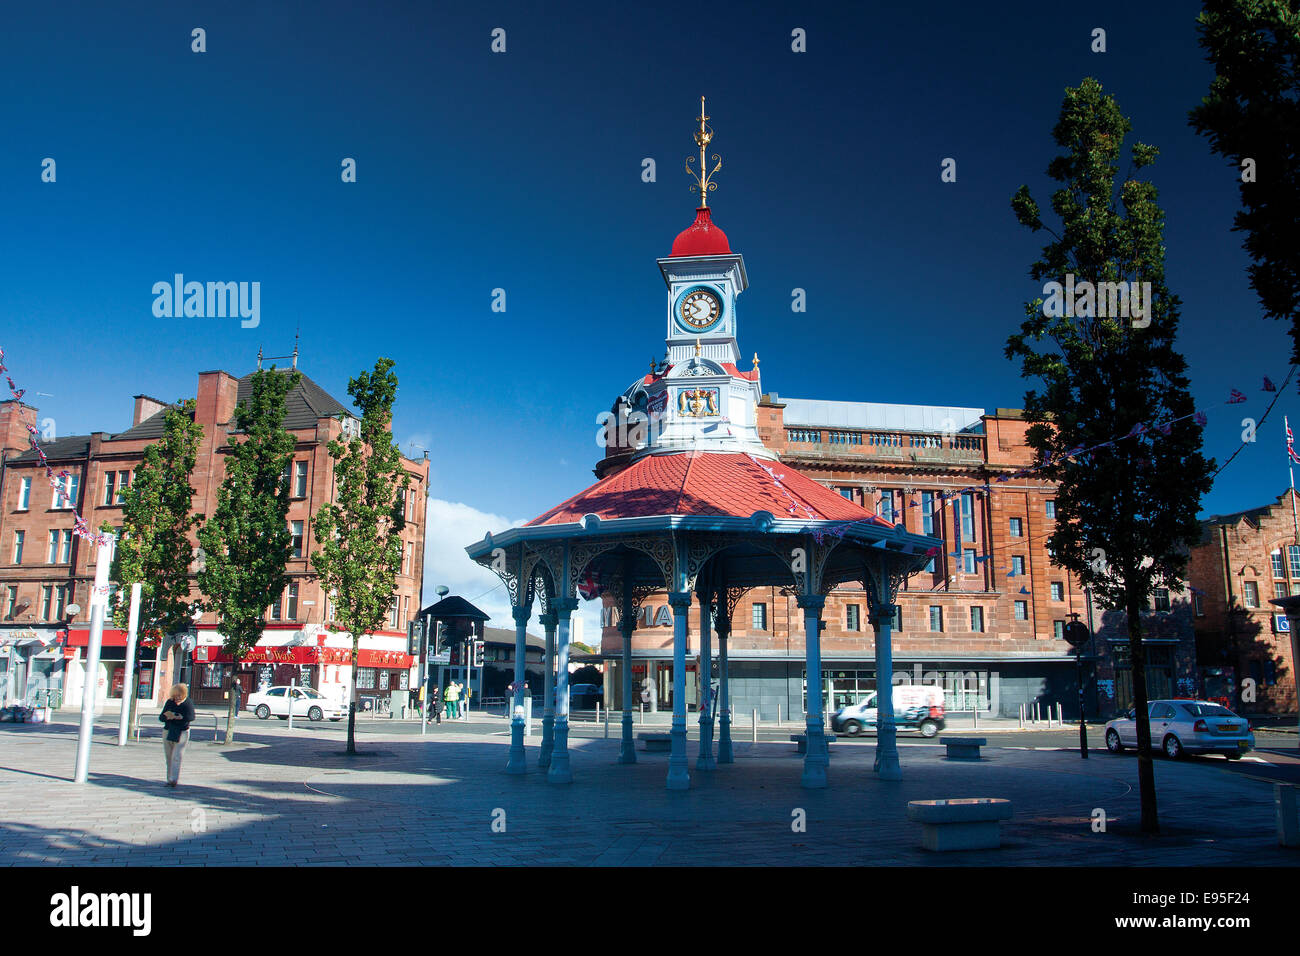 The cast iron Bridgeton Bandstand, Bridgeton Cross, Glasgow - Stock Image